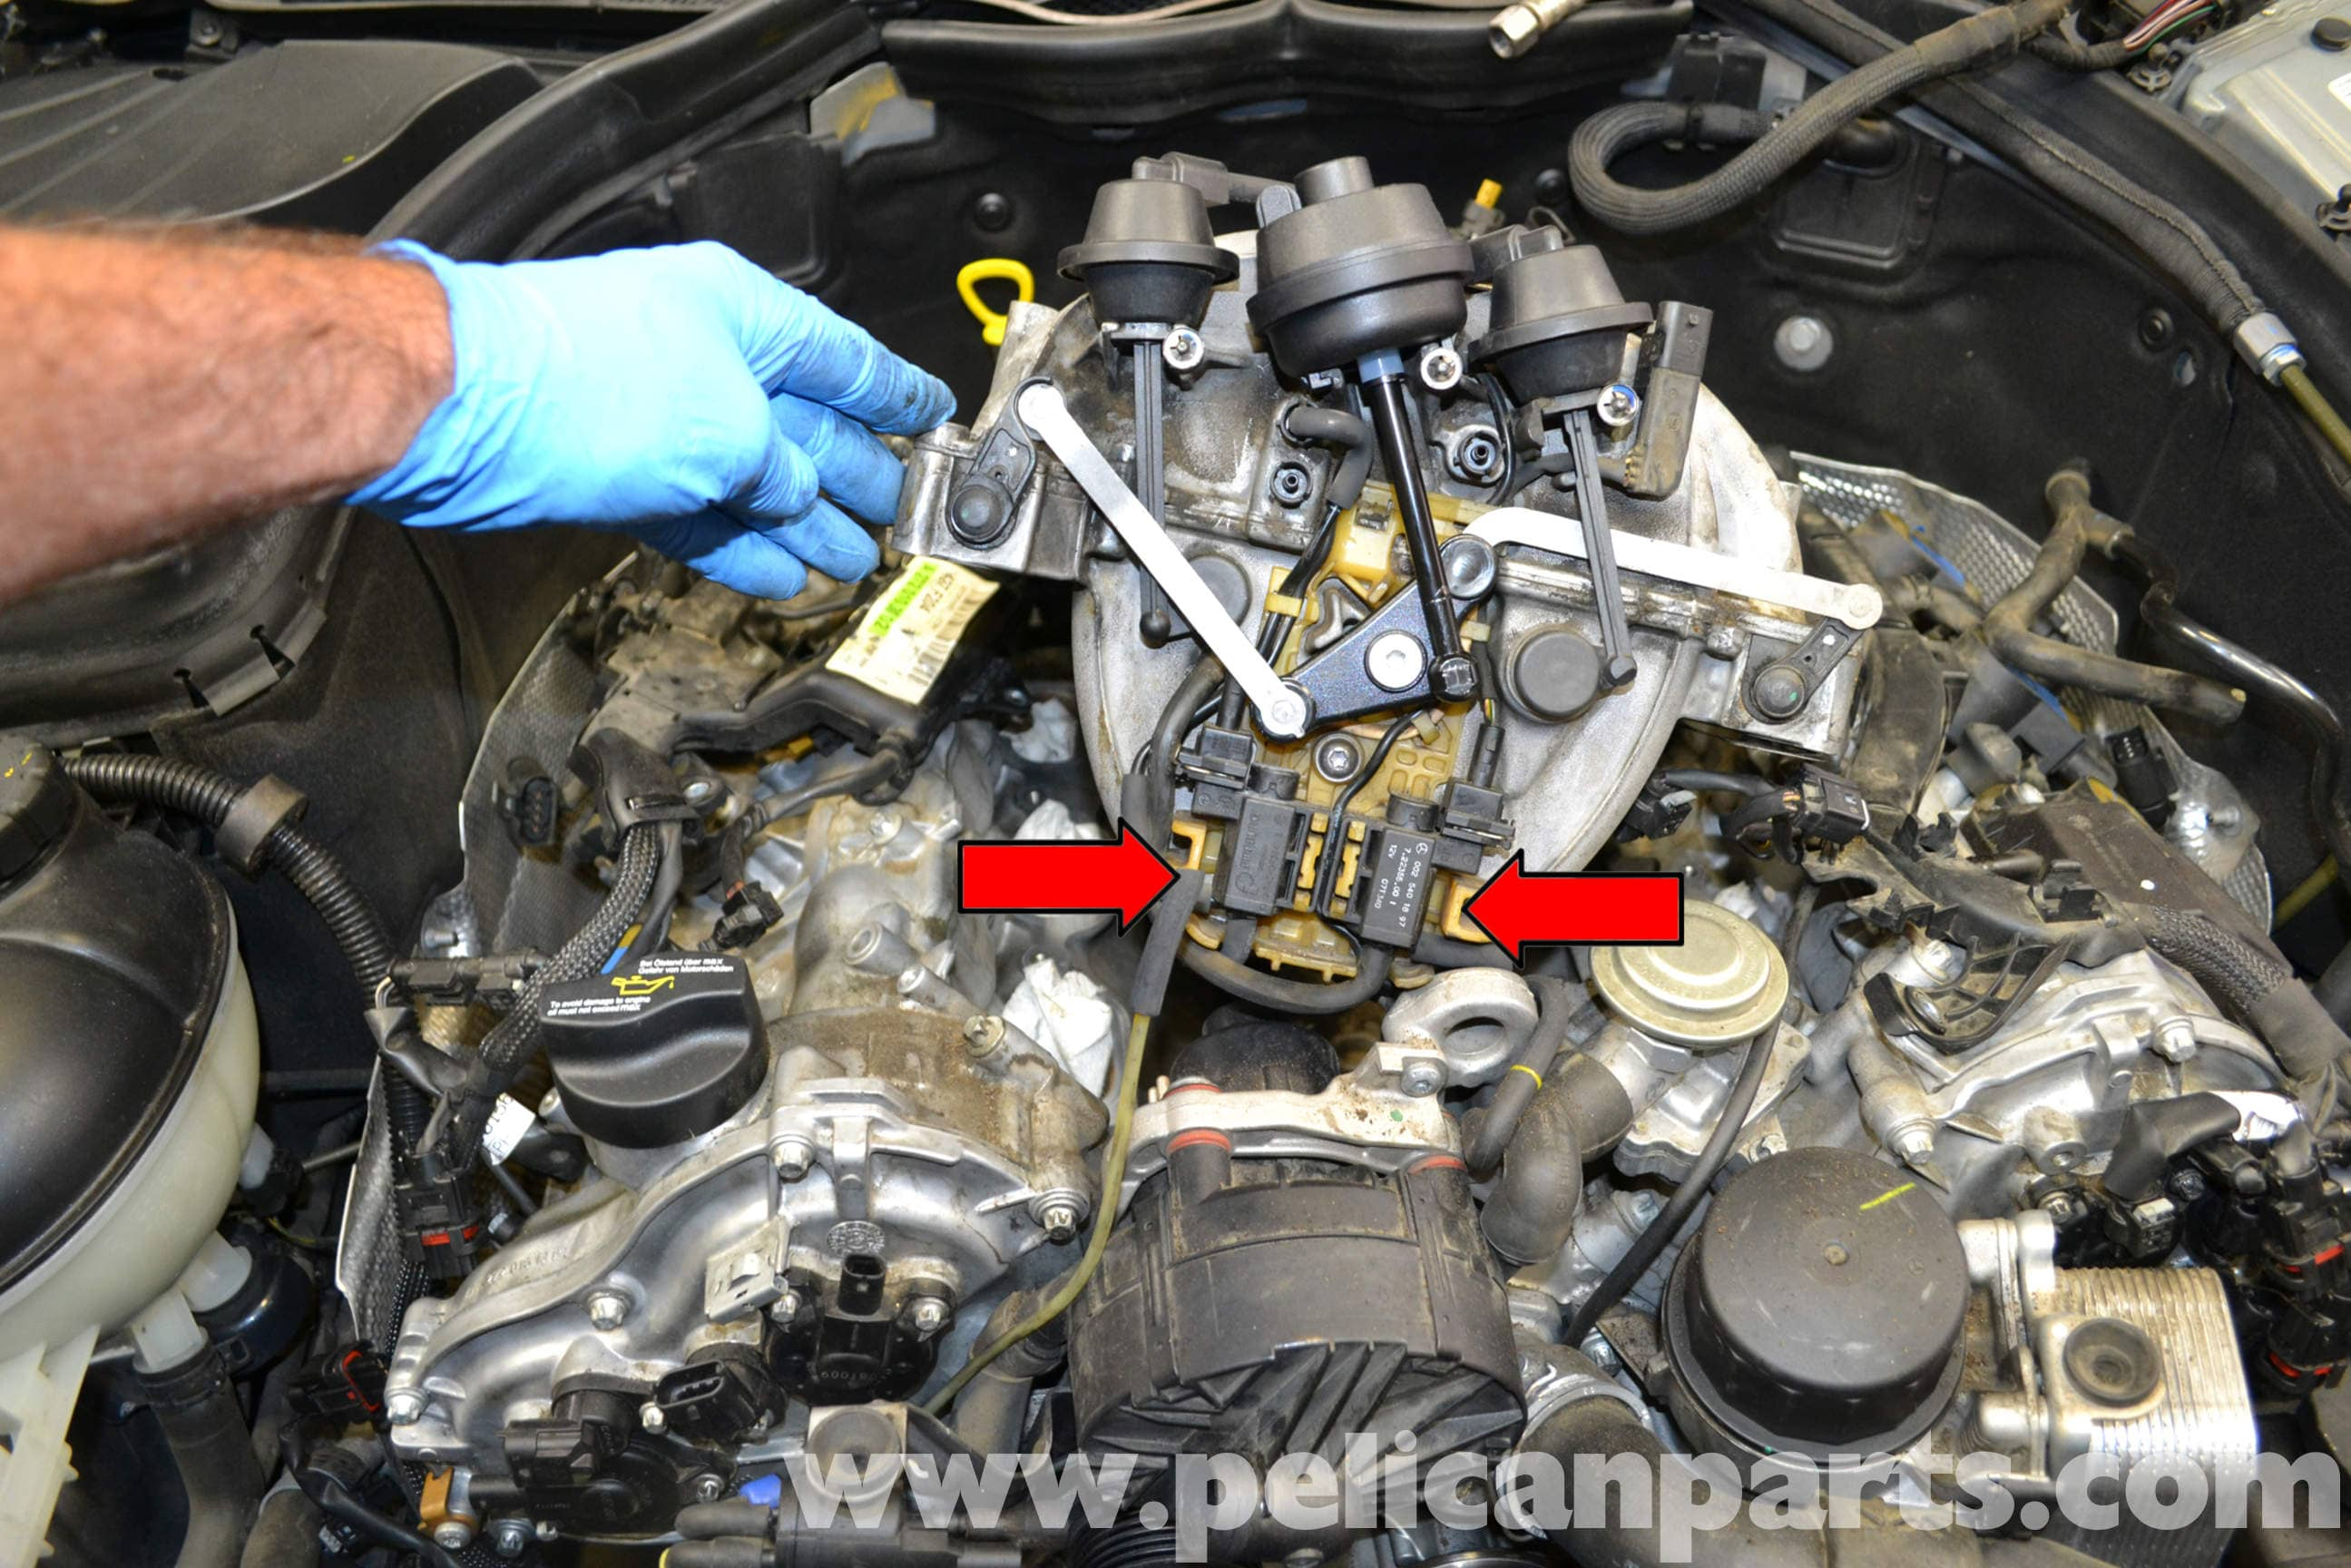 Mercedes-Benz W204 EGR Change-Over Valve Replacement - (2008-2014